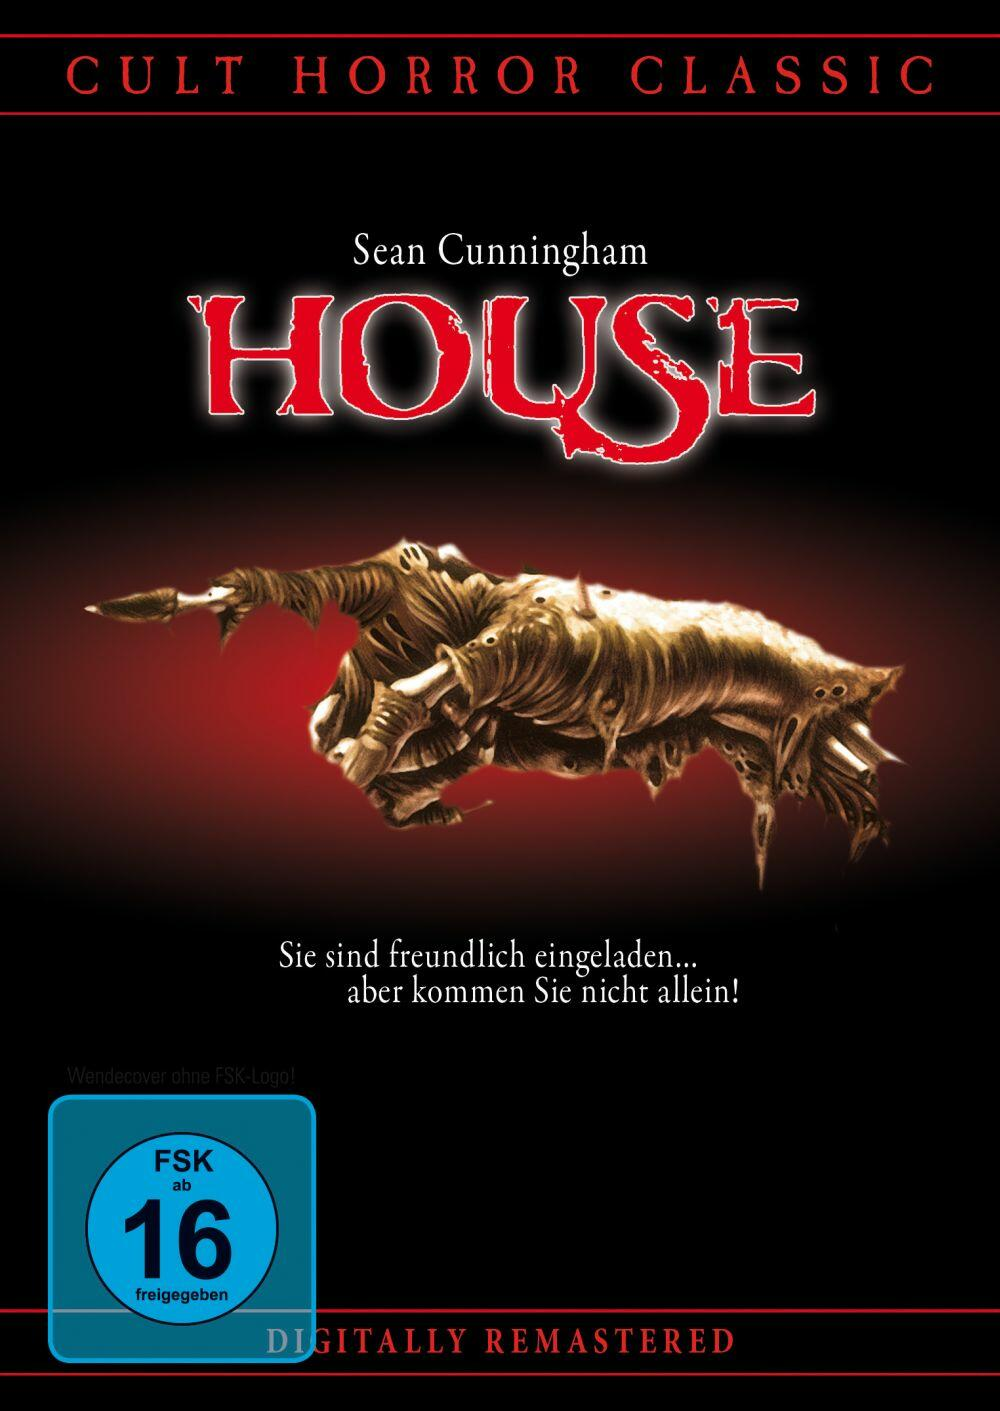 the house movie house das horrorhaus bild 2 8 moviepilot de 11713